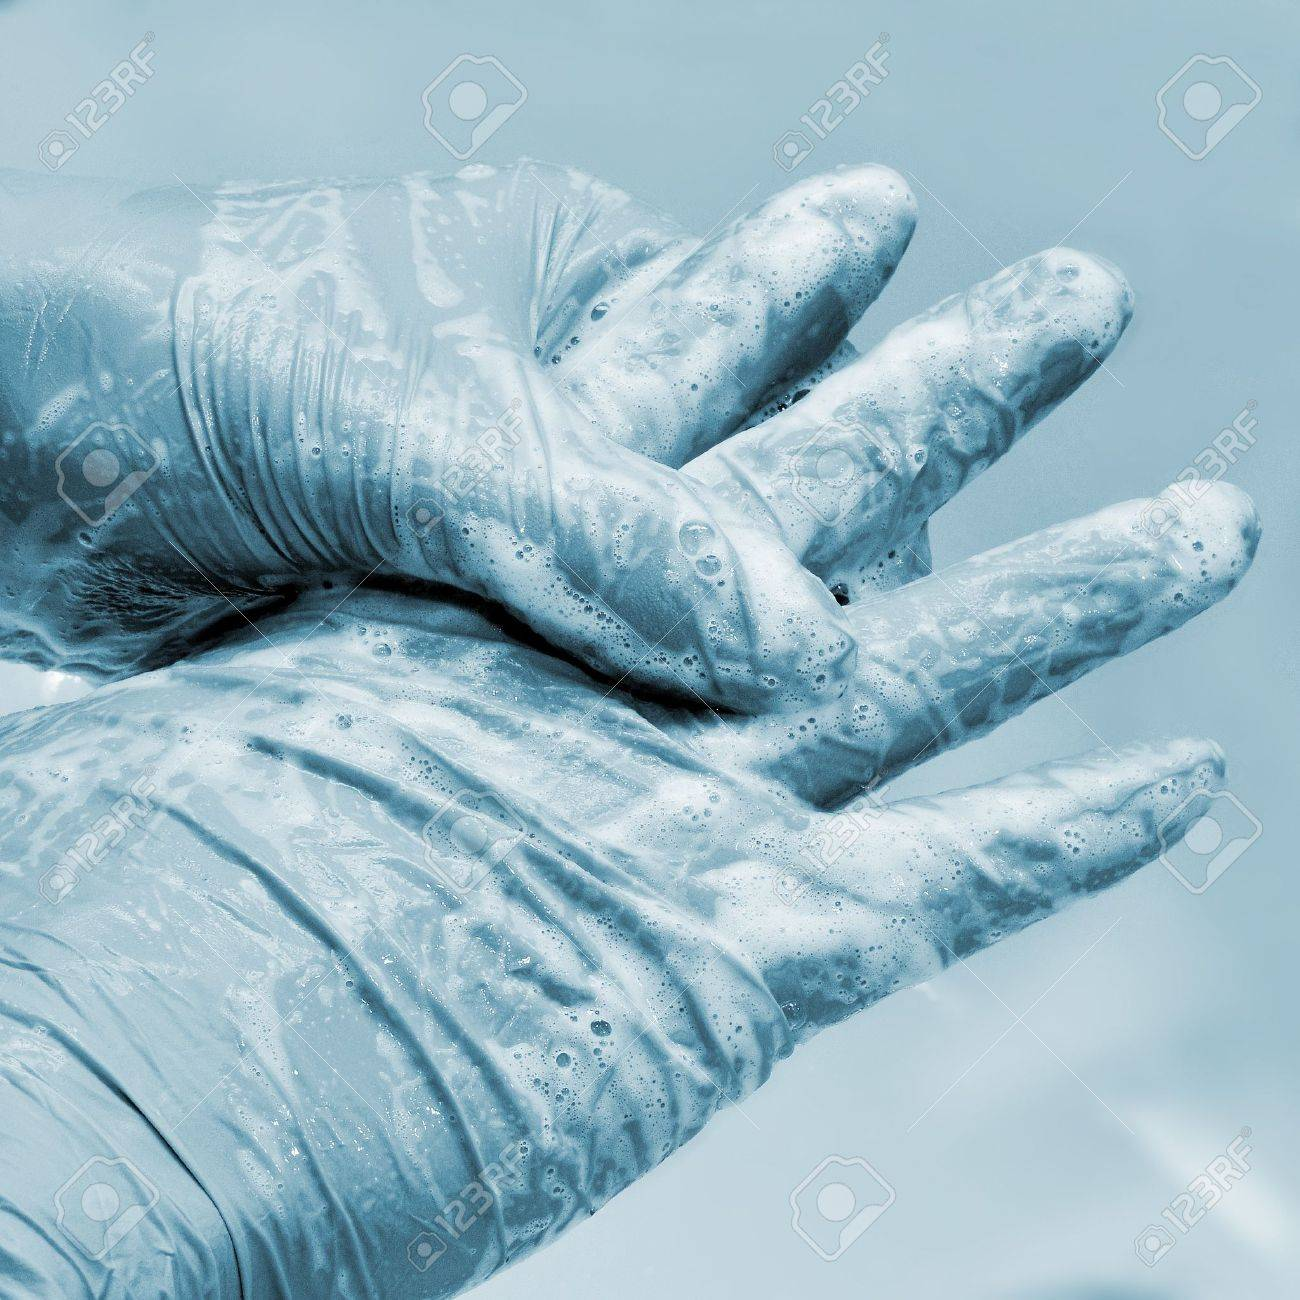 someone wearing surgical gloves washing his or her hands Stock Photo - 17127270